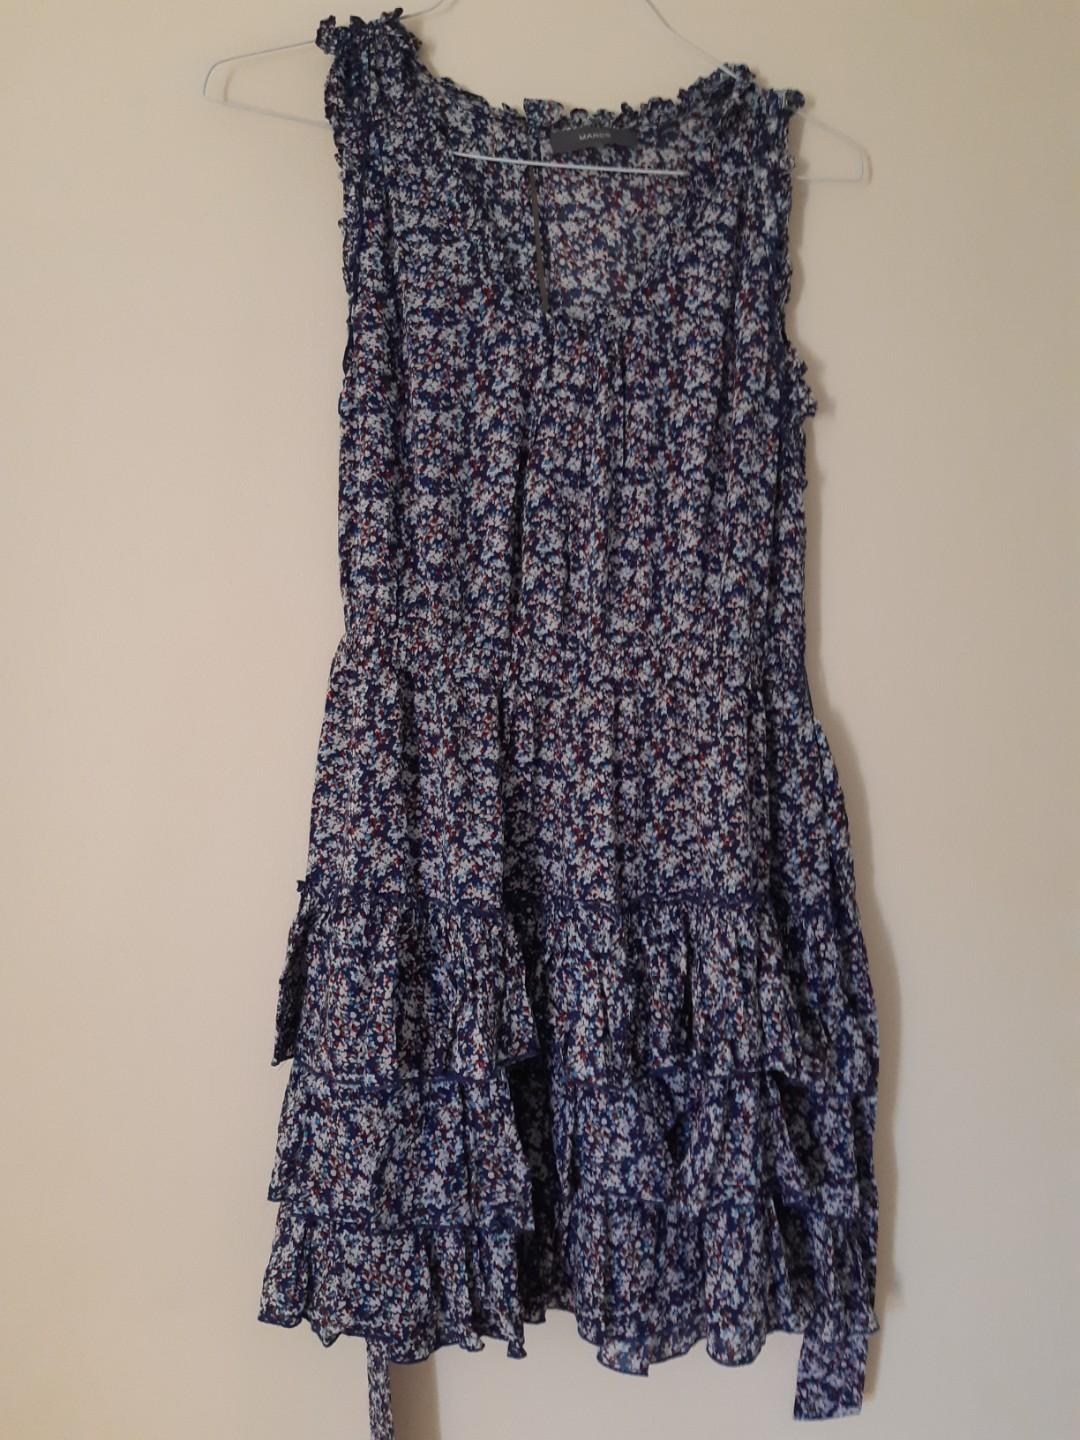 Marc summery dress size 12